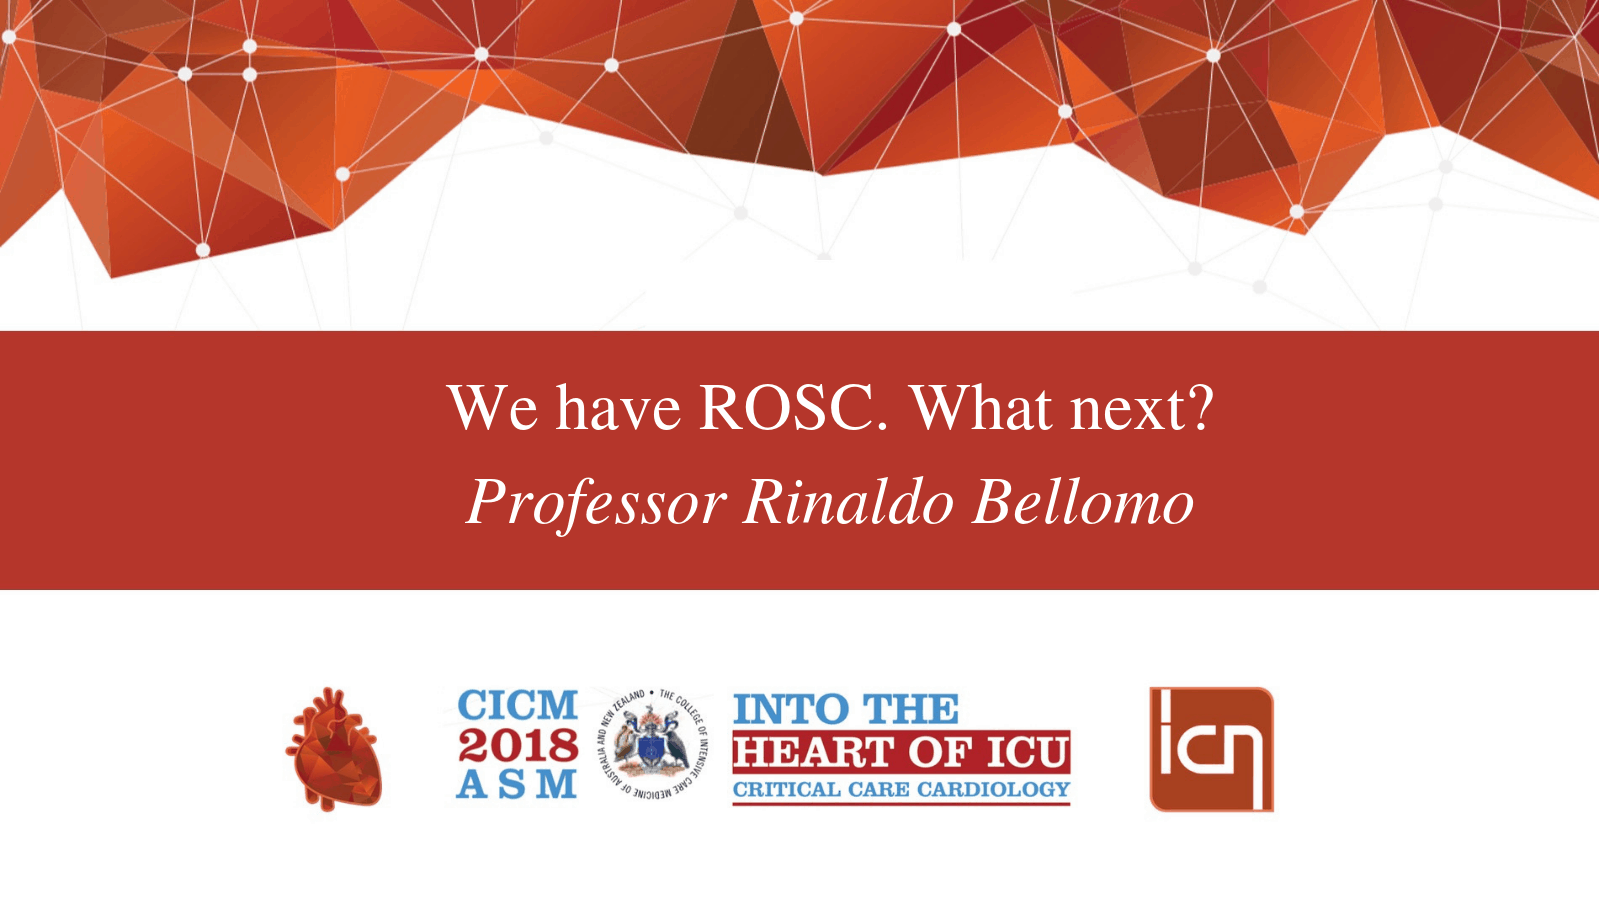 We have ROSC. What next?